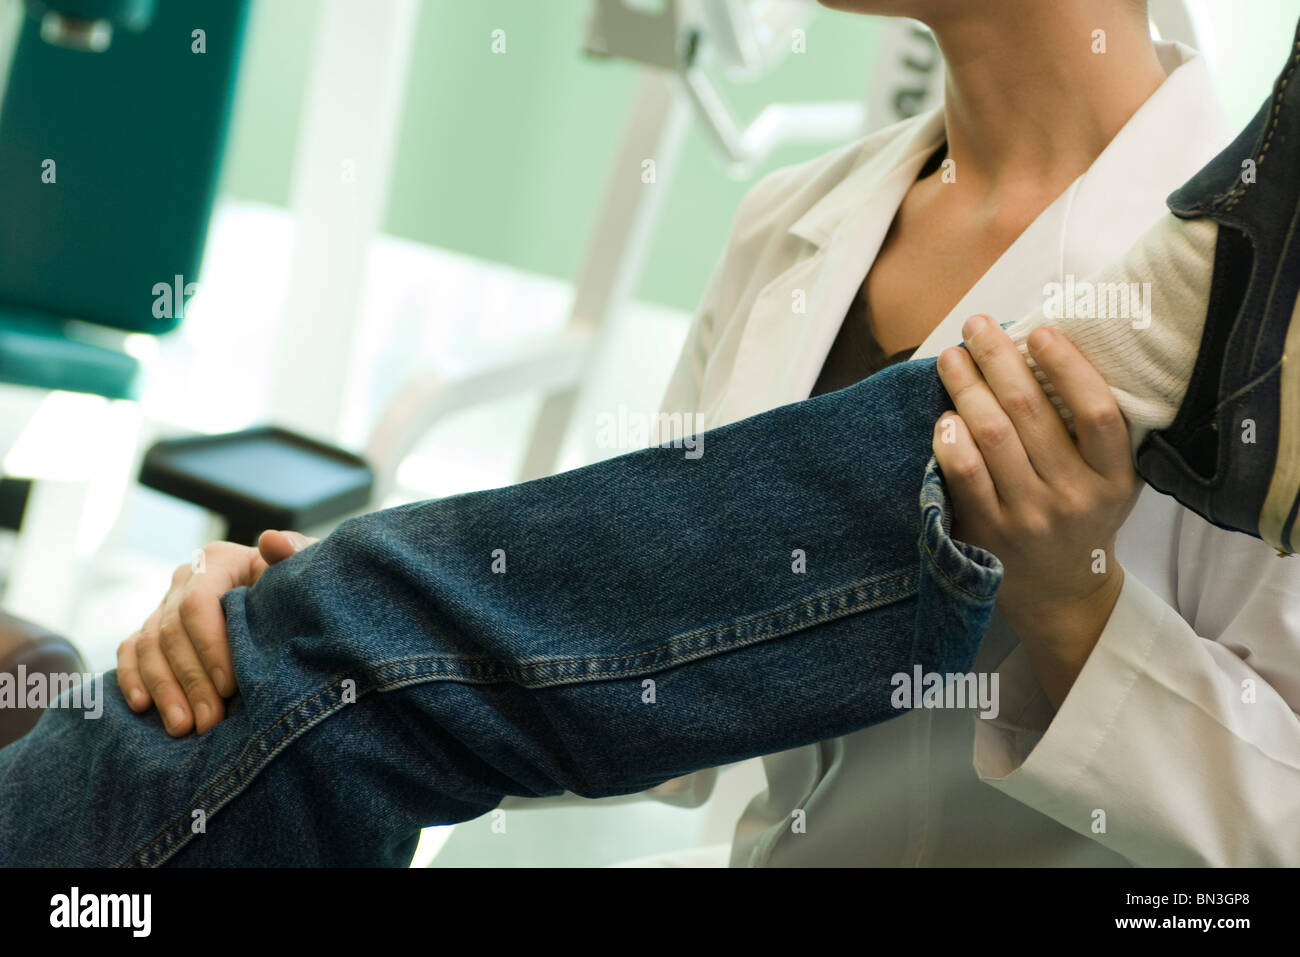 Physical therapist treating patient - Stock Image